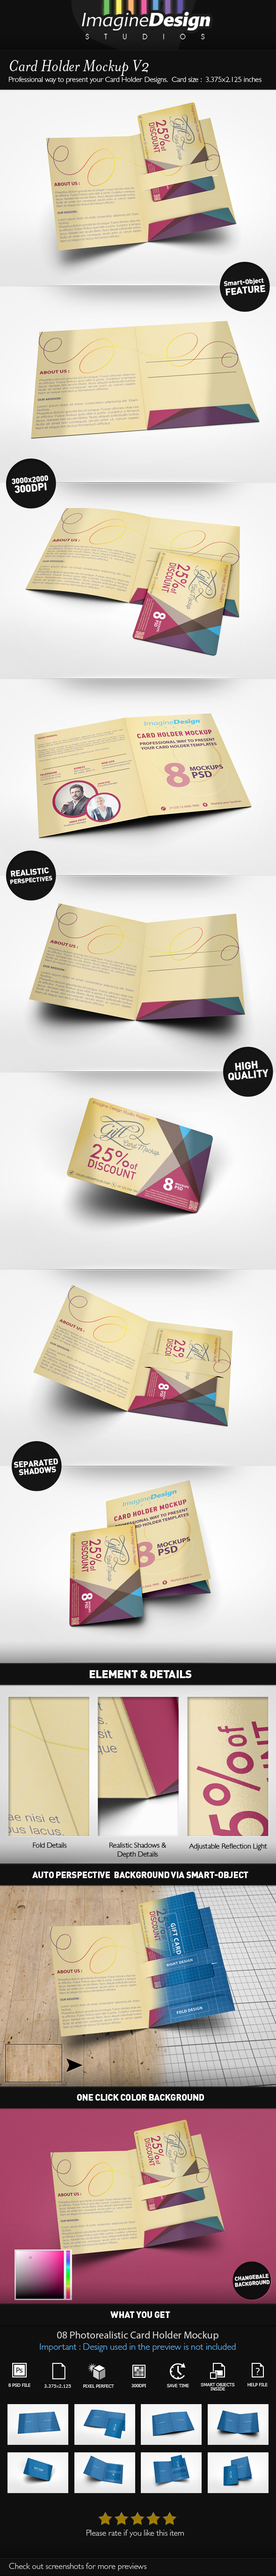 Card Holder Mock-up V2 by idesignstudio